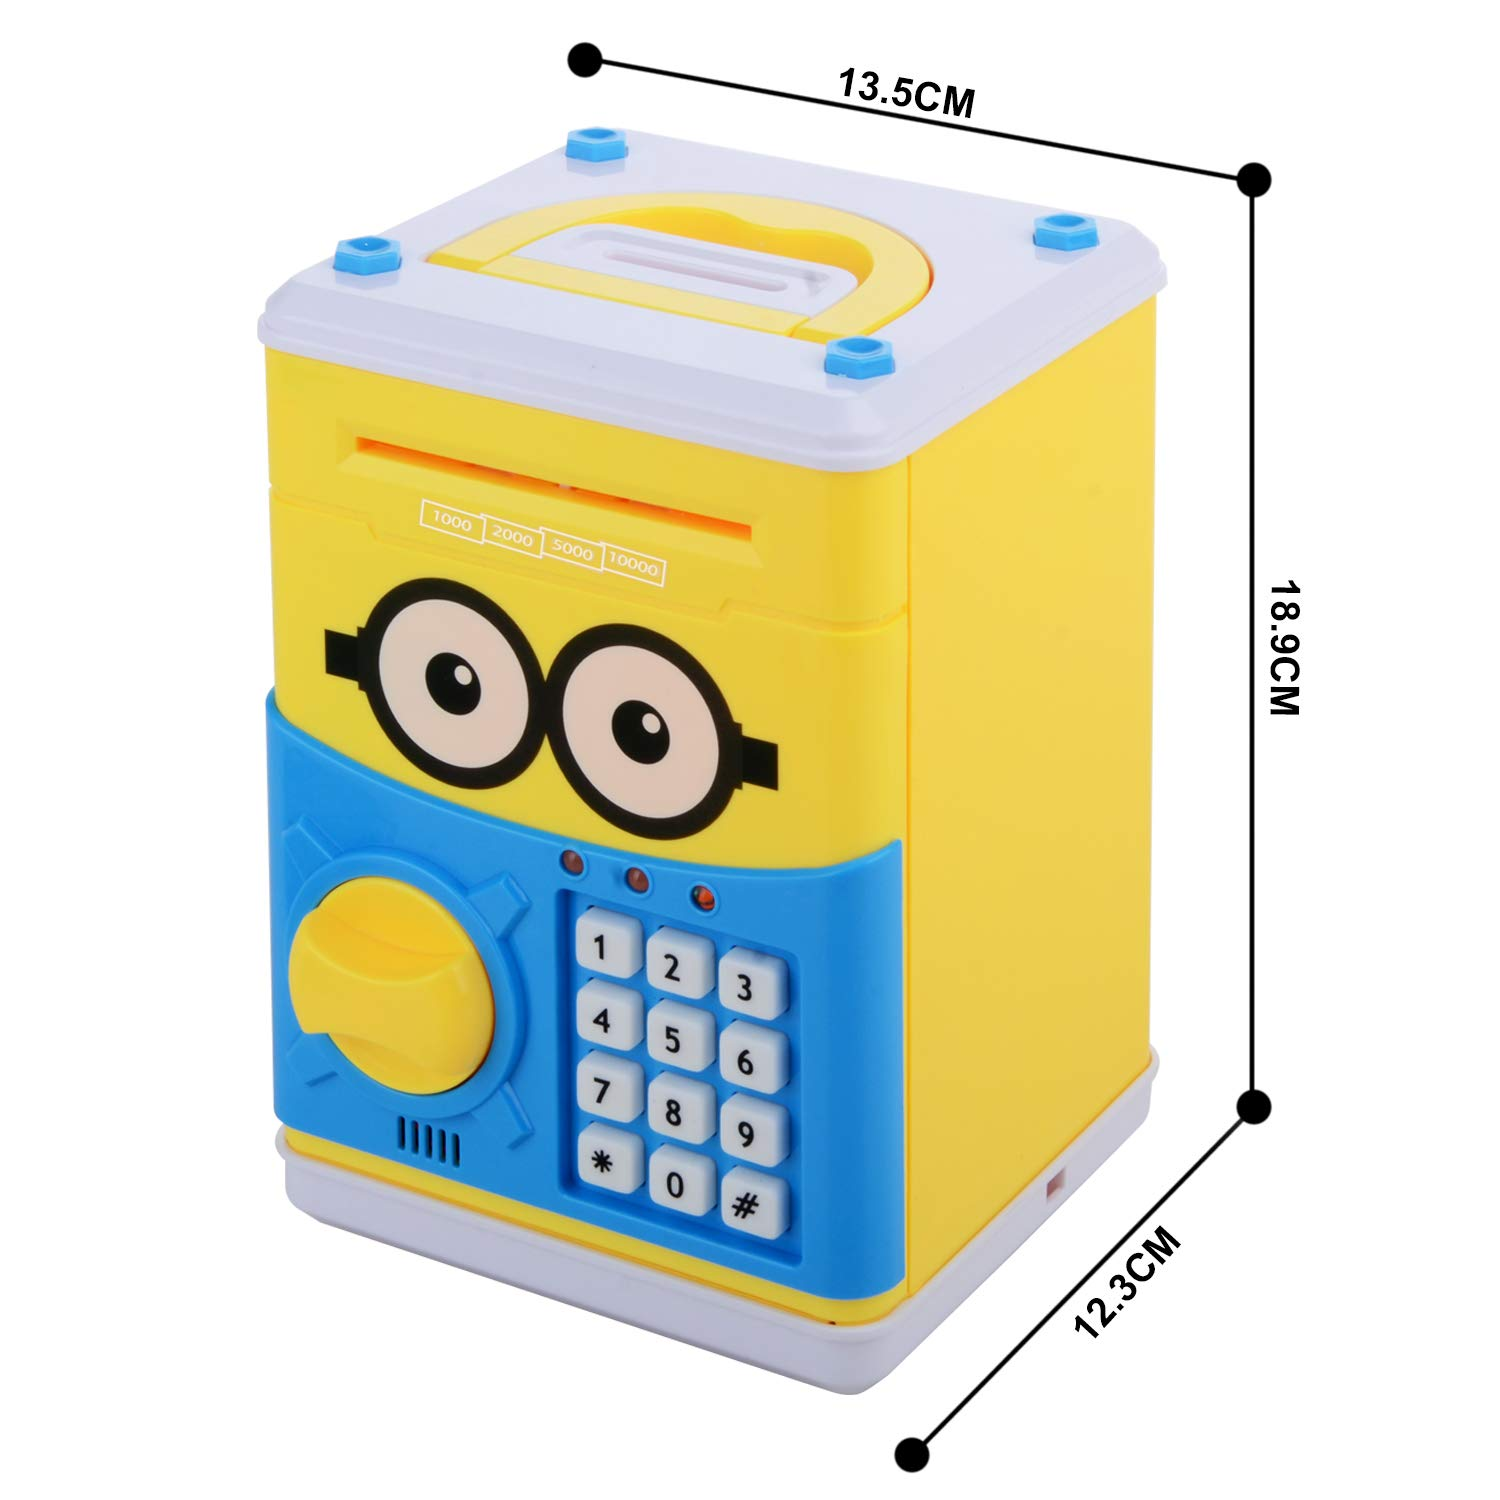 Cartoon Piggy Bank for Children Kids Password Electronic Money Bank, Mini ATM Electronic Coin Bank Coin Box, Great Christmas Gift for Children by CreaTion (Image #4)